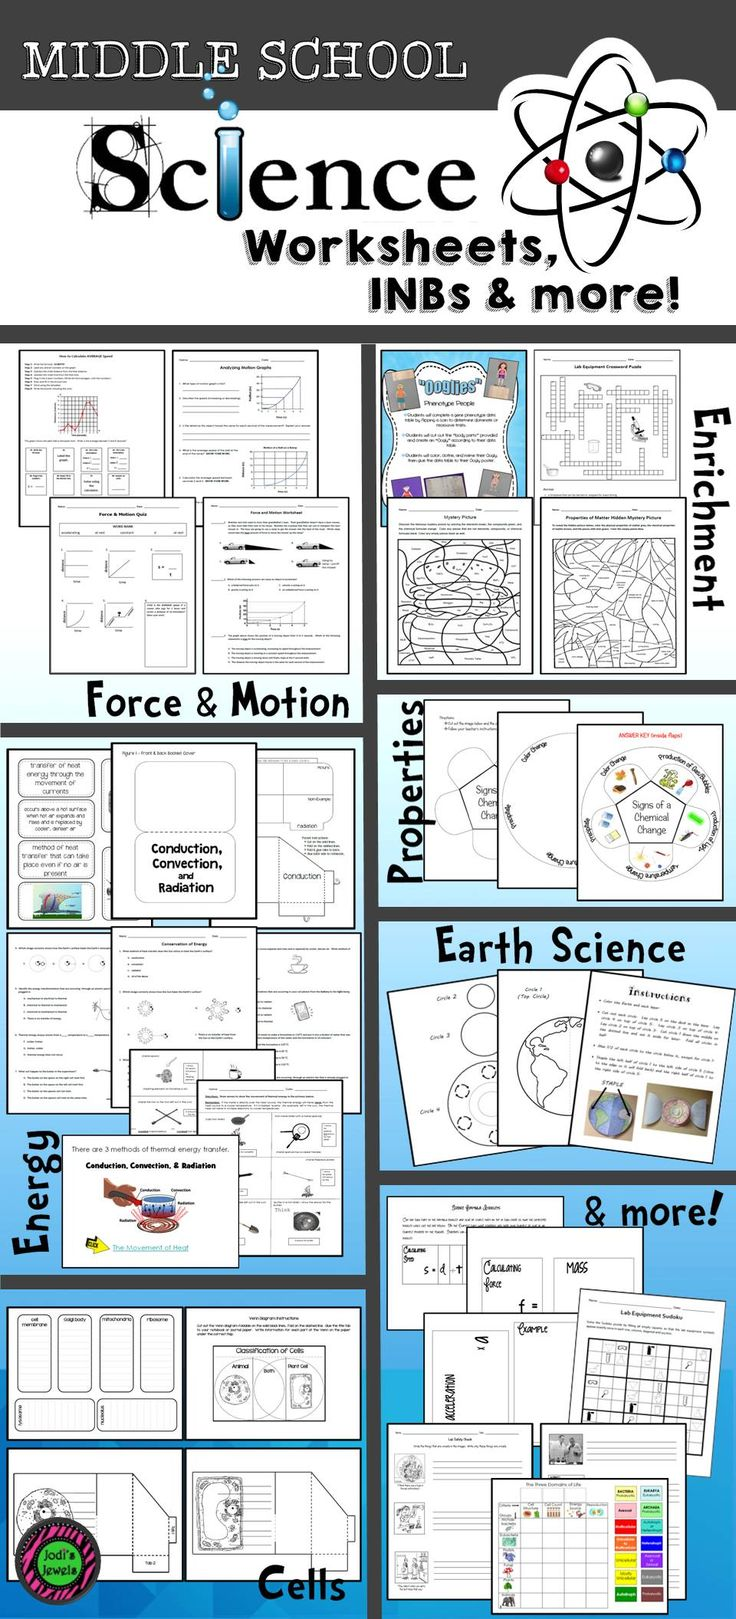 Visit Jodi's Jewels for all of your Middle School Science worksheets, interactive notebooks, PowerPoints, and much, much more!